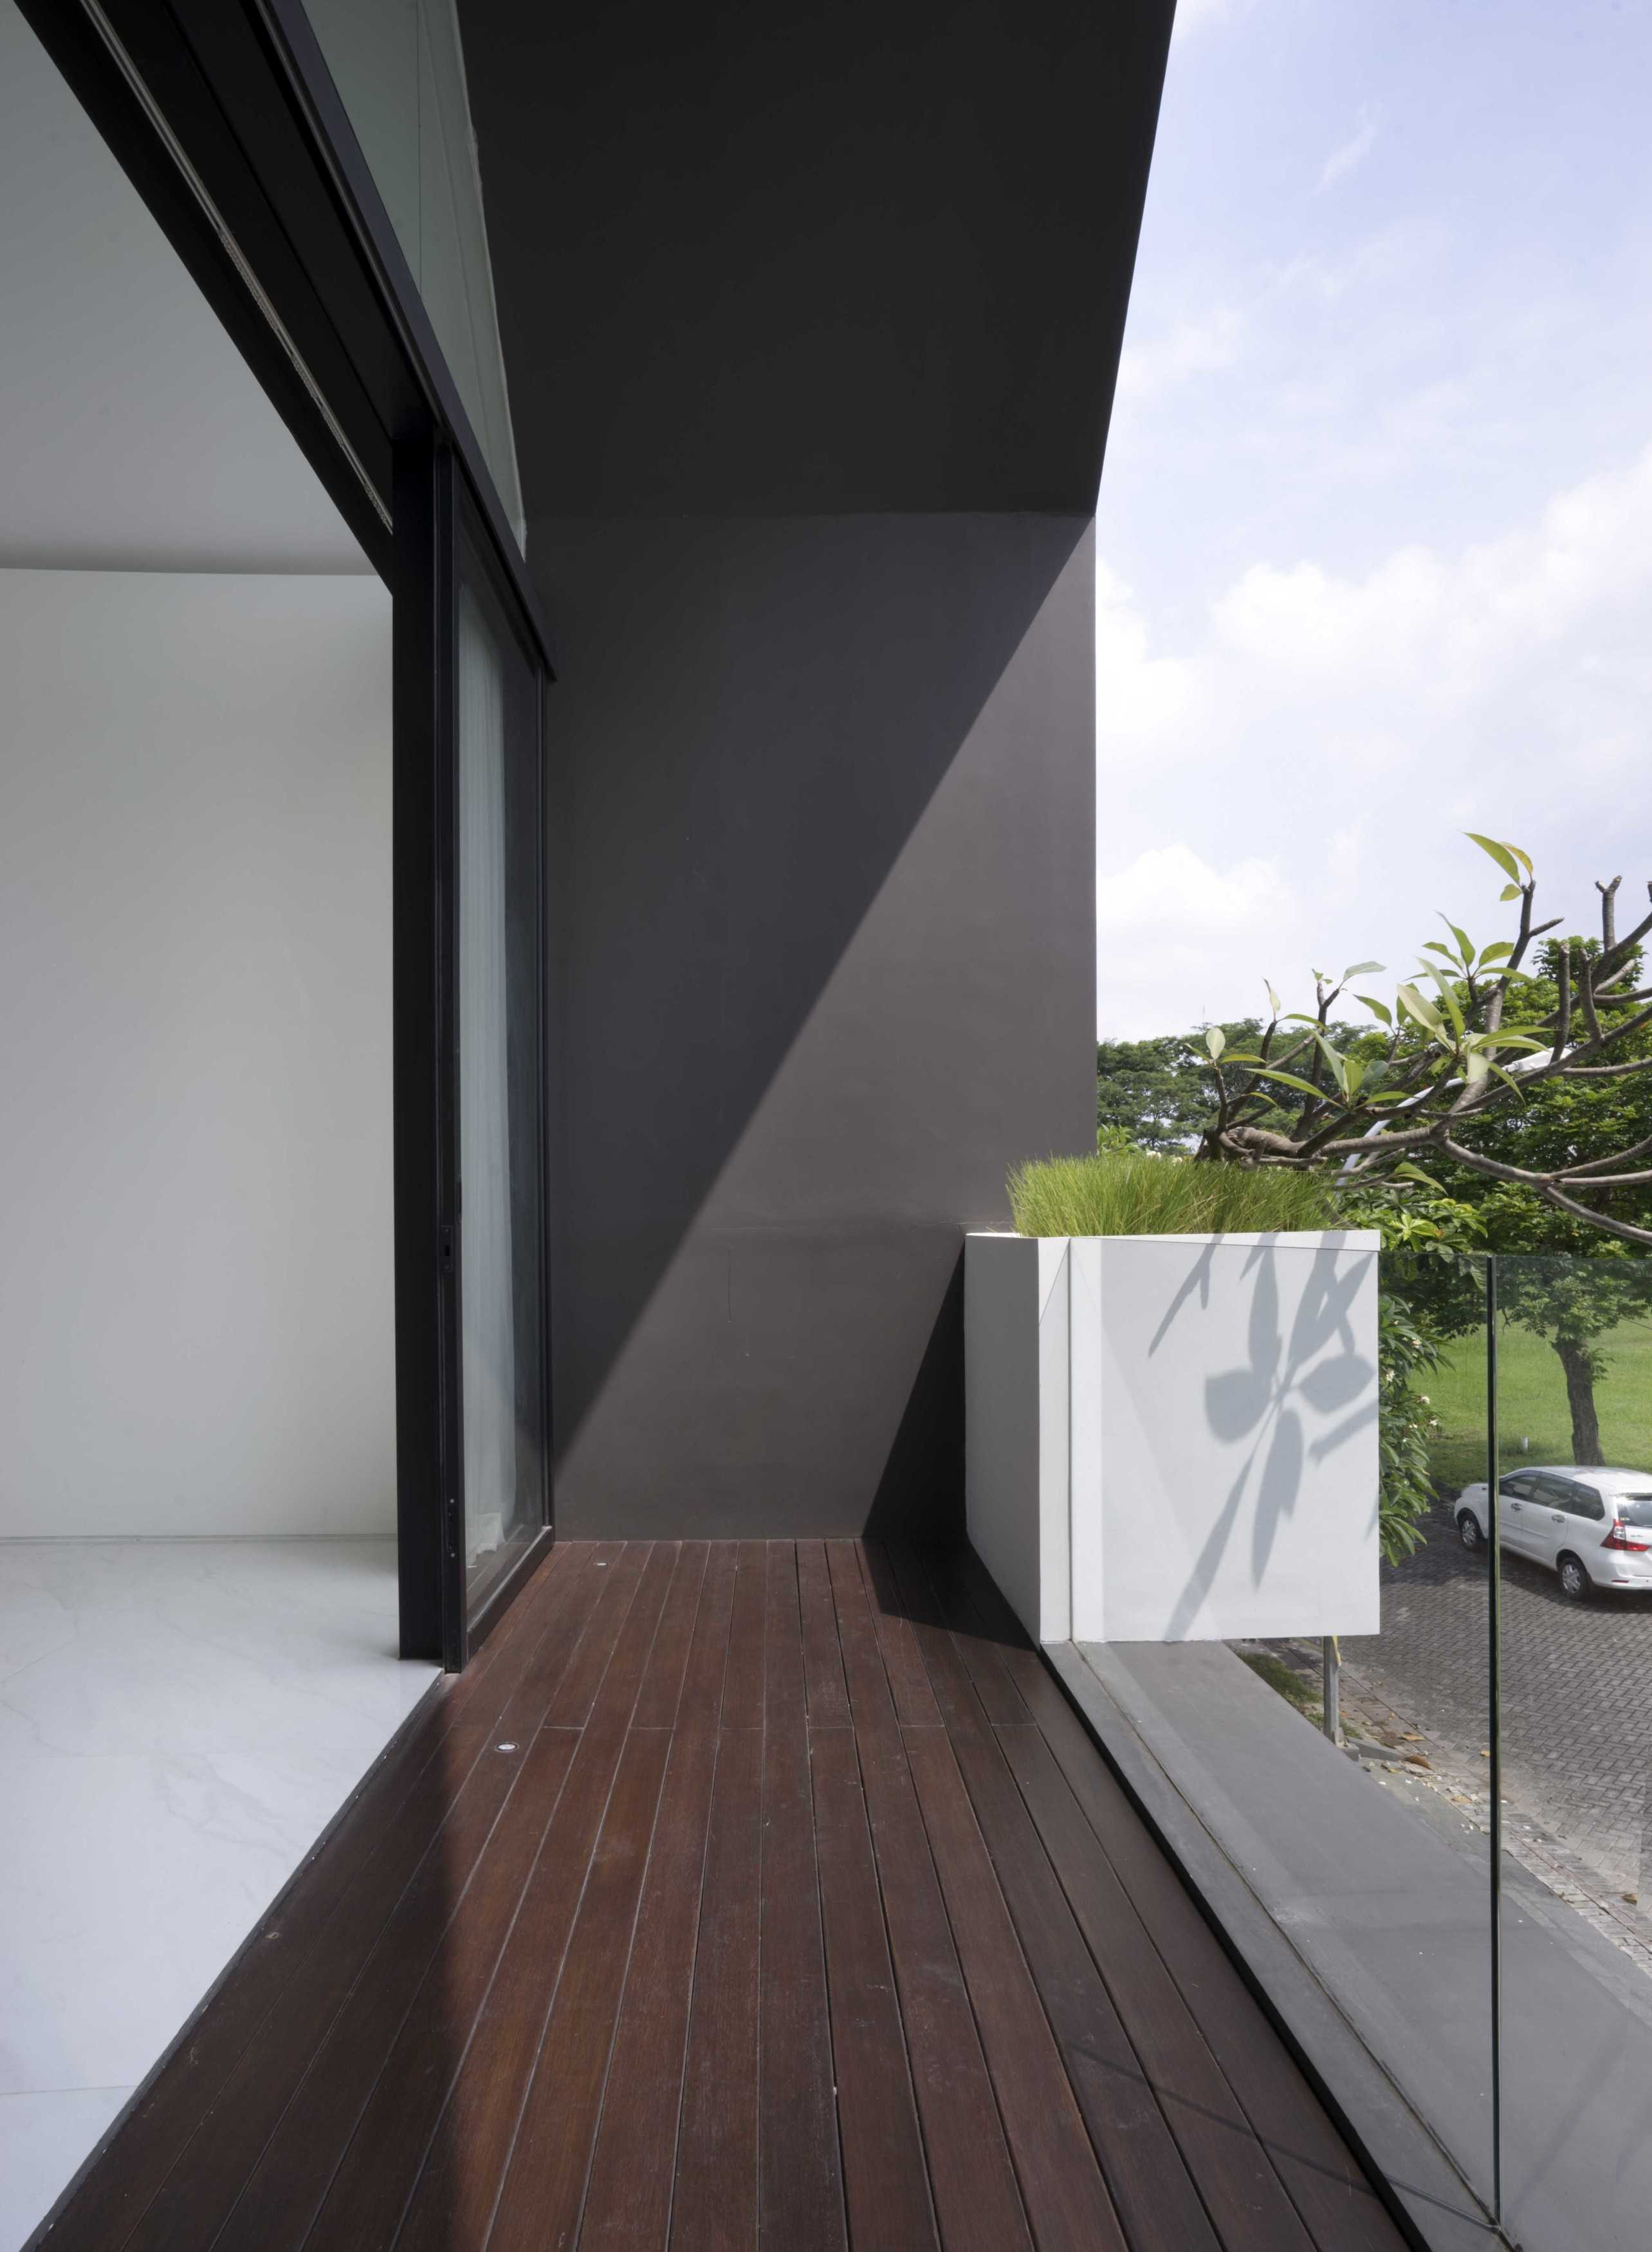 Simple Projects Architecture 'hhh' House Surabaya, Kota Sby, Jawa Timur, Indonesia  Simple-Projects-Architecture-Hhh-House   75094